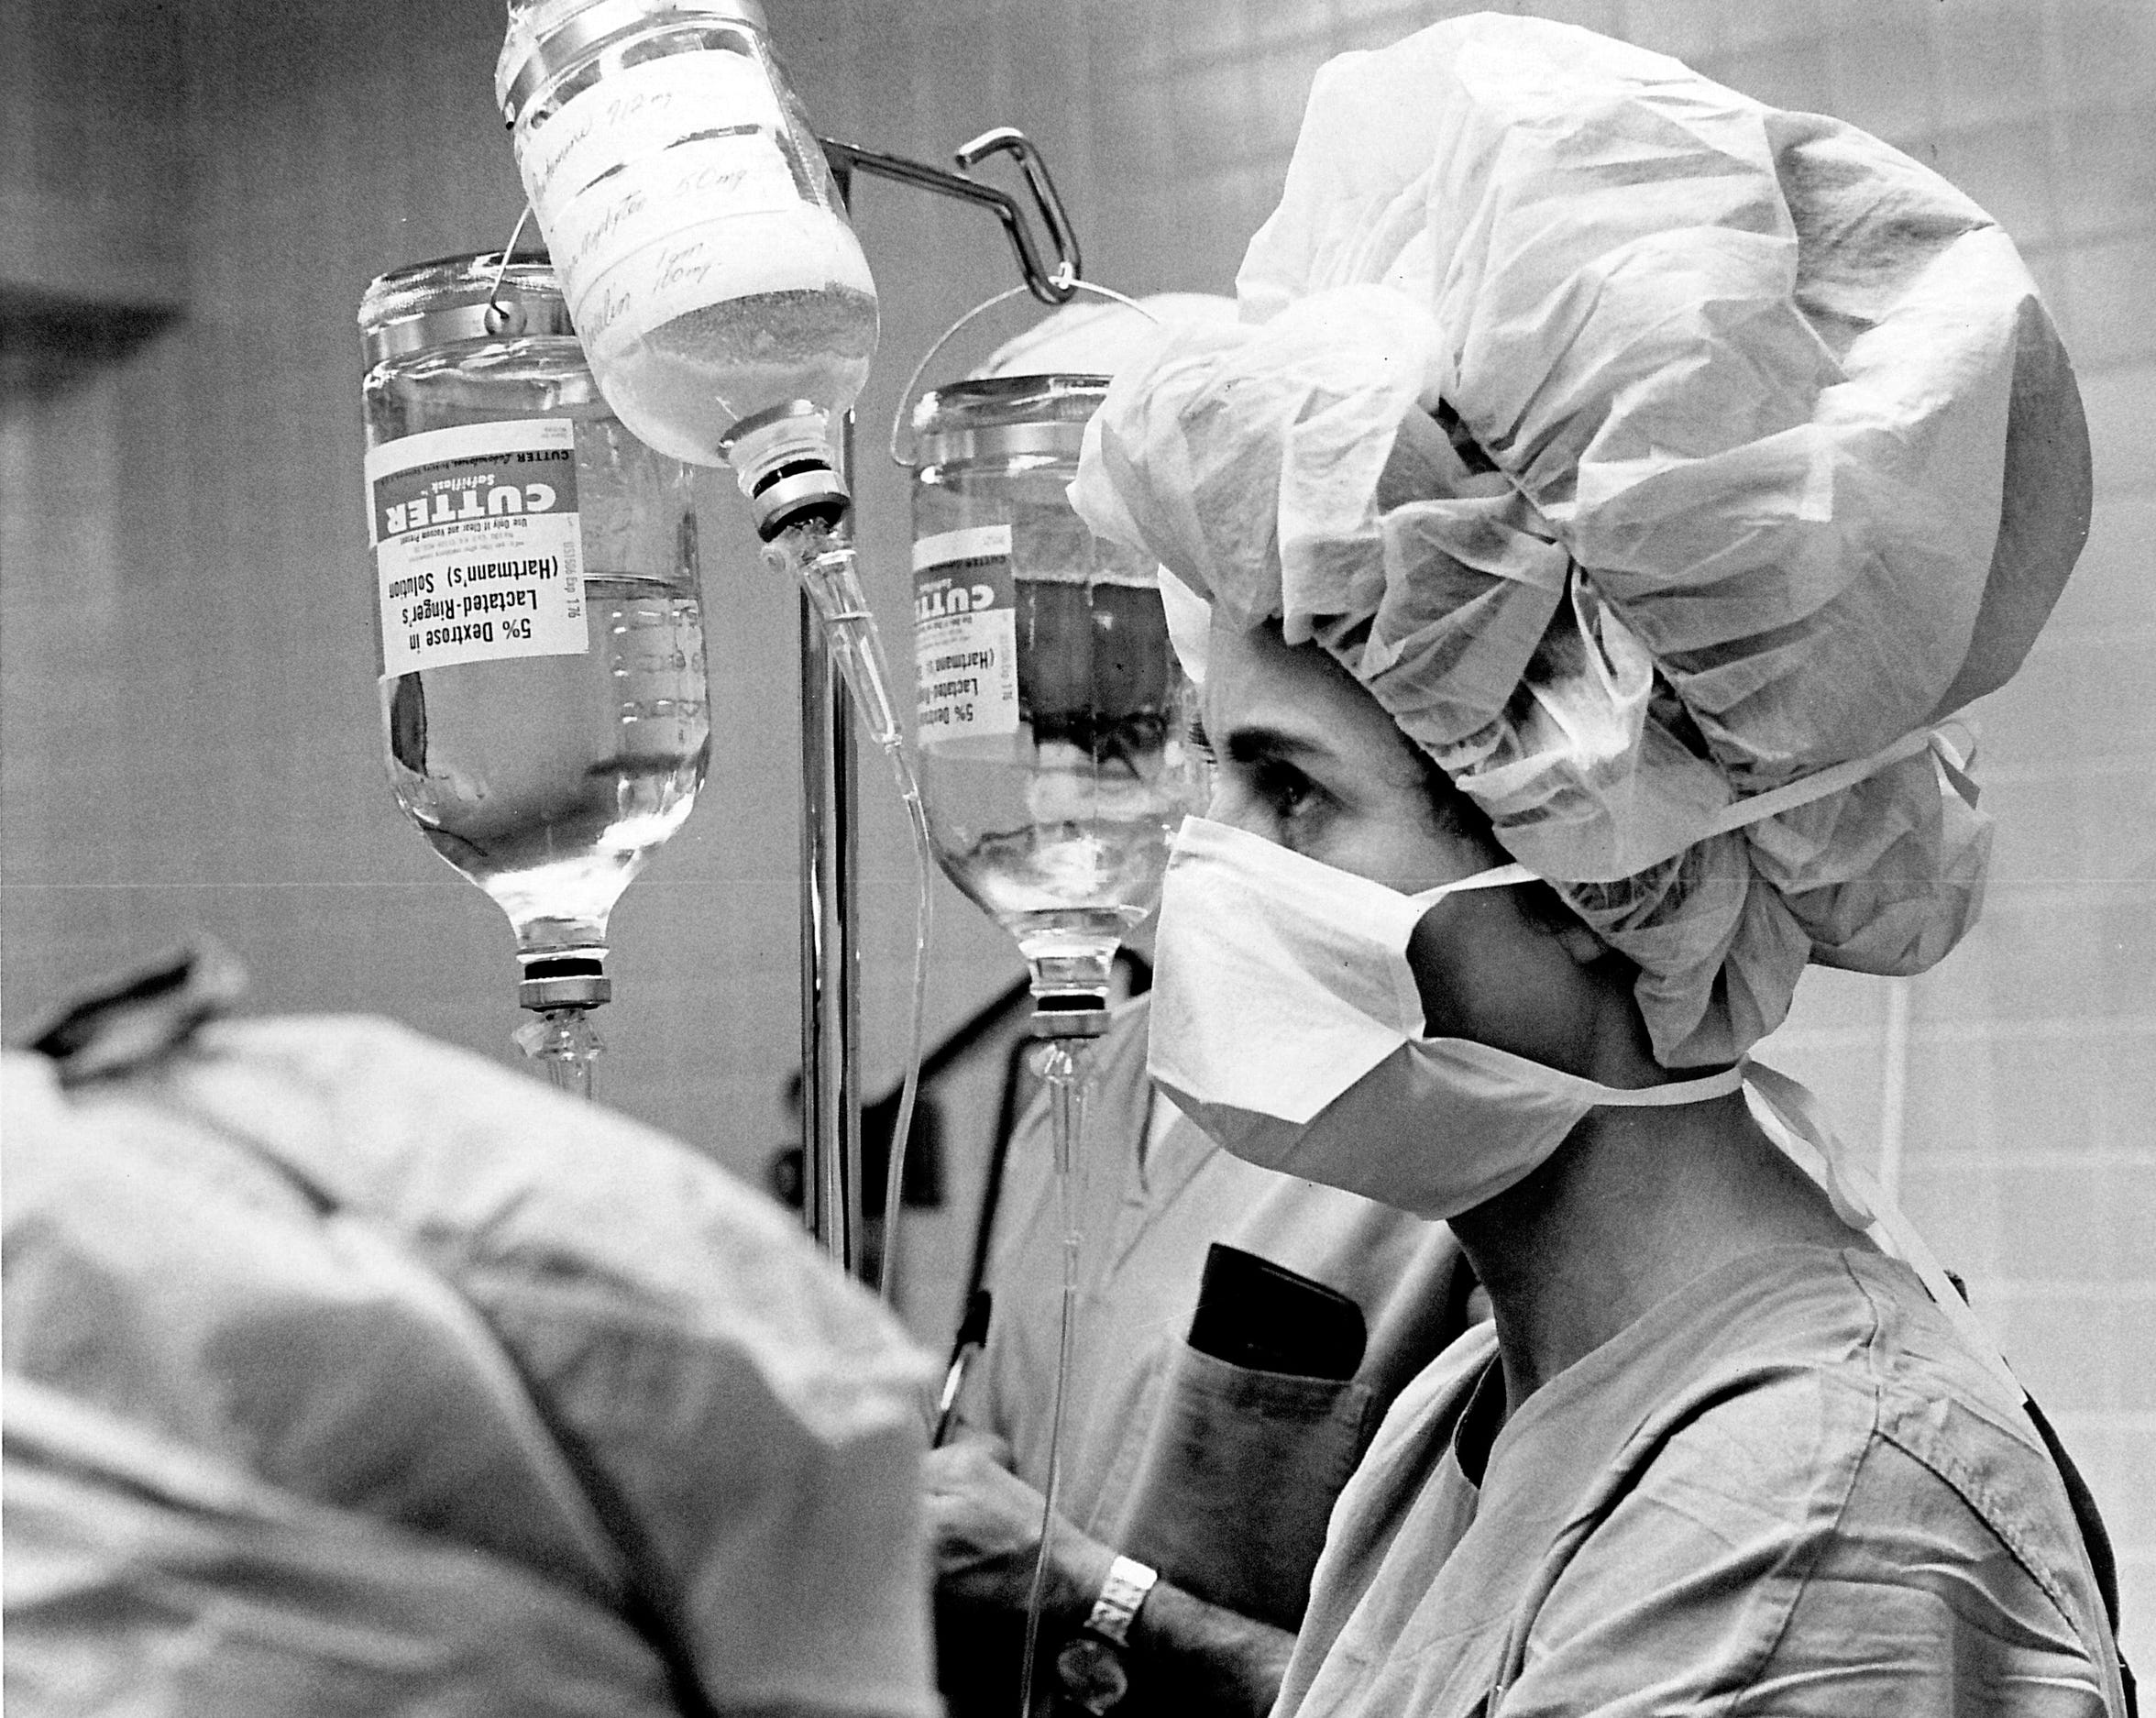 A nurse assists during a procedure at West Texas Medical Center on April 8, 1971.